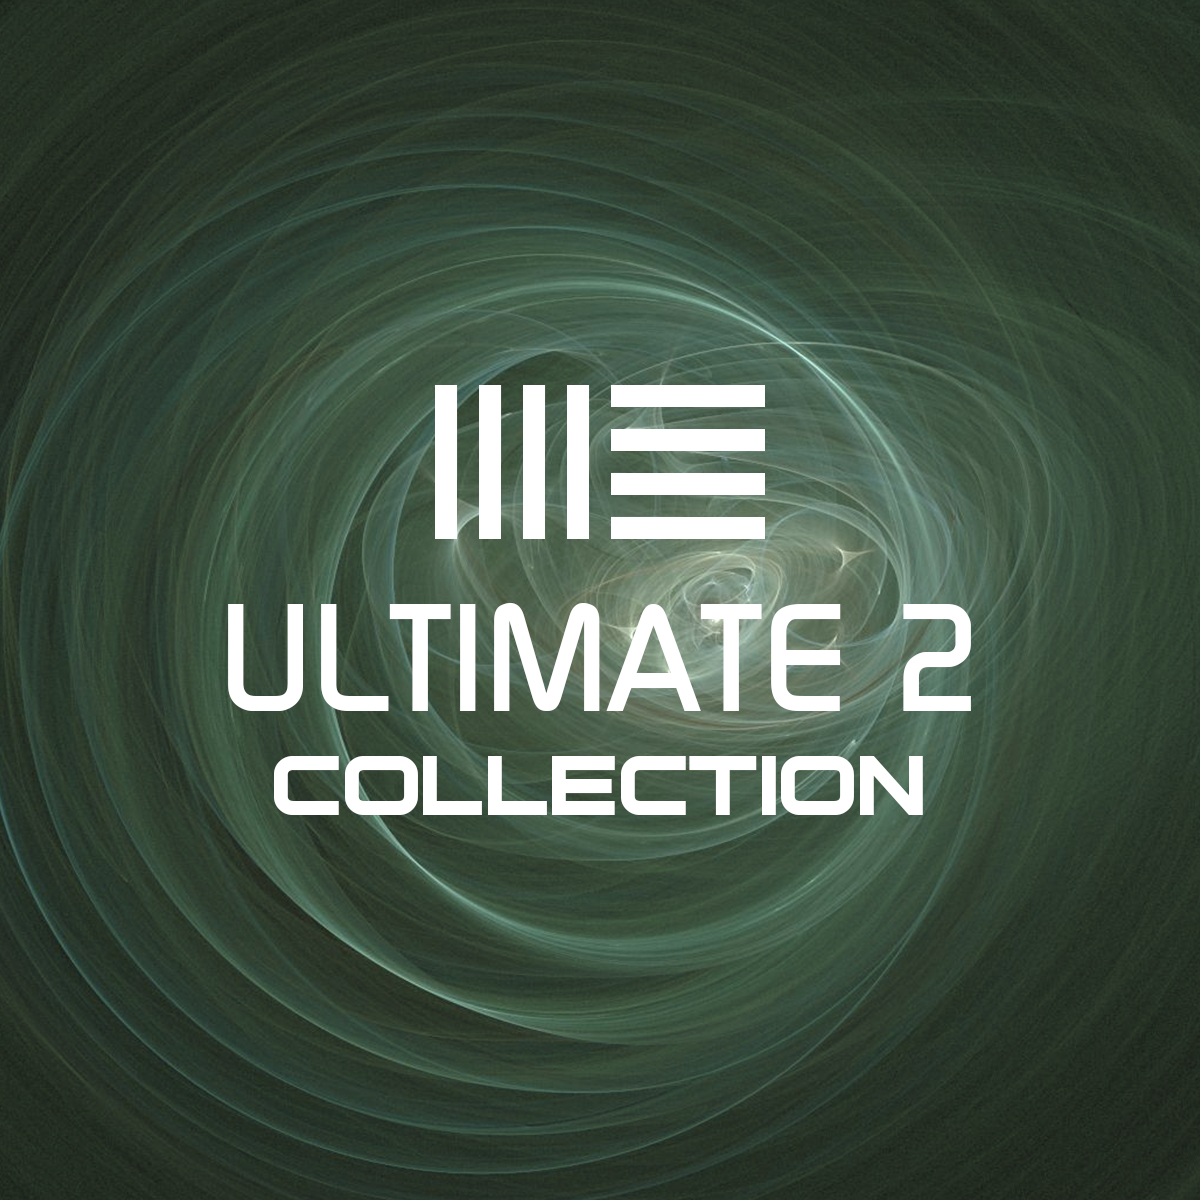 Ableton Ultimate 2 Collection - Music Software Training - Jason Timothy